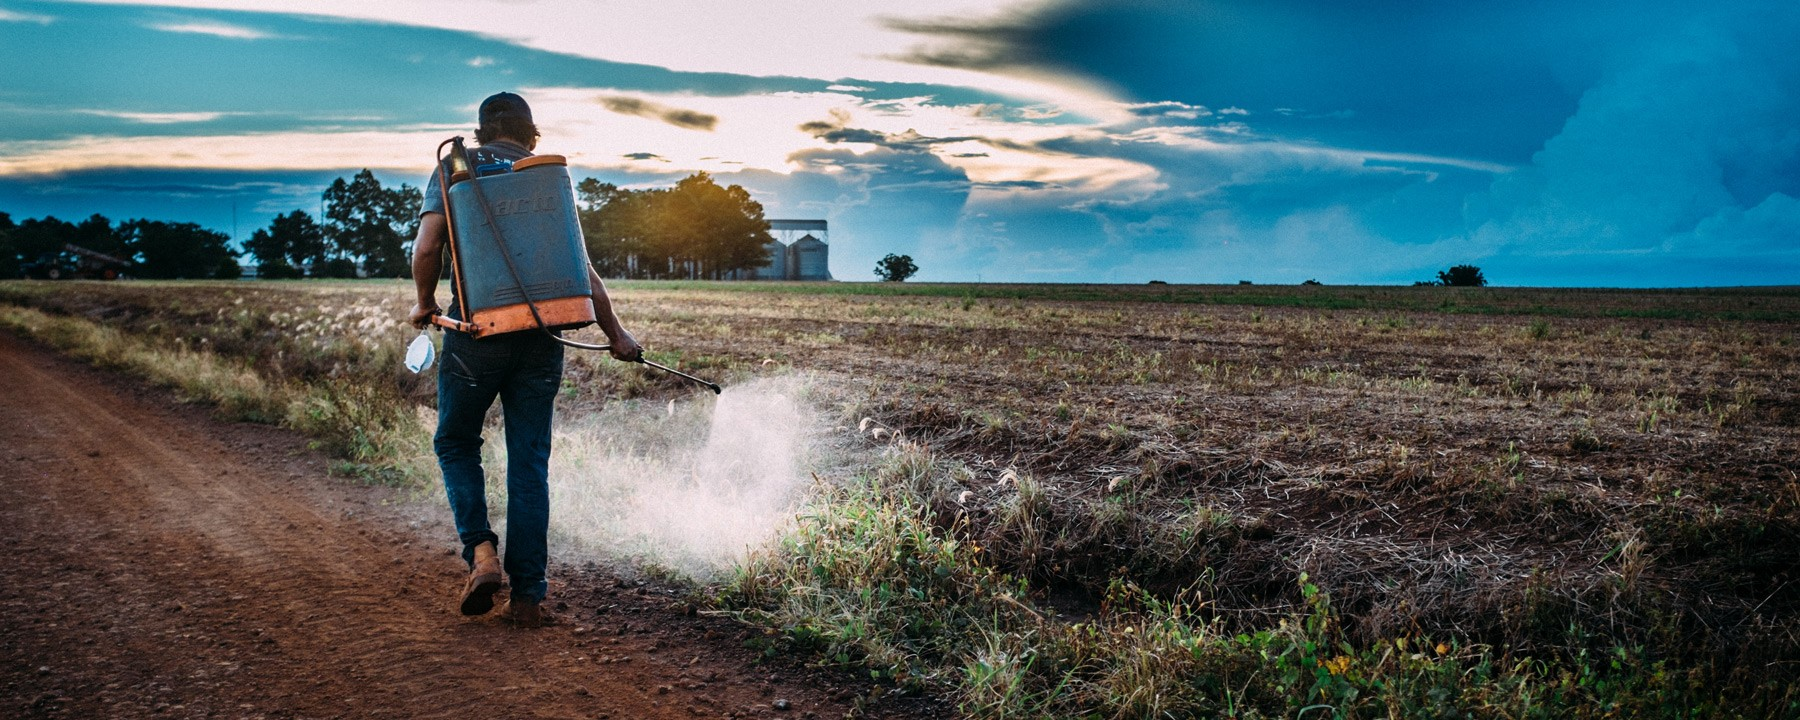 GMOs, Pesticides, and the Megacorporations Behind Your Food